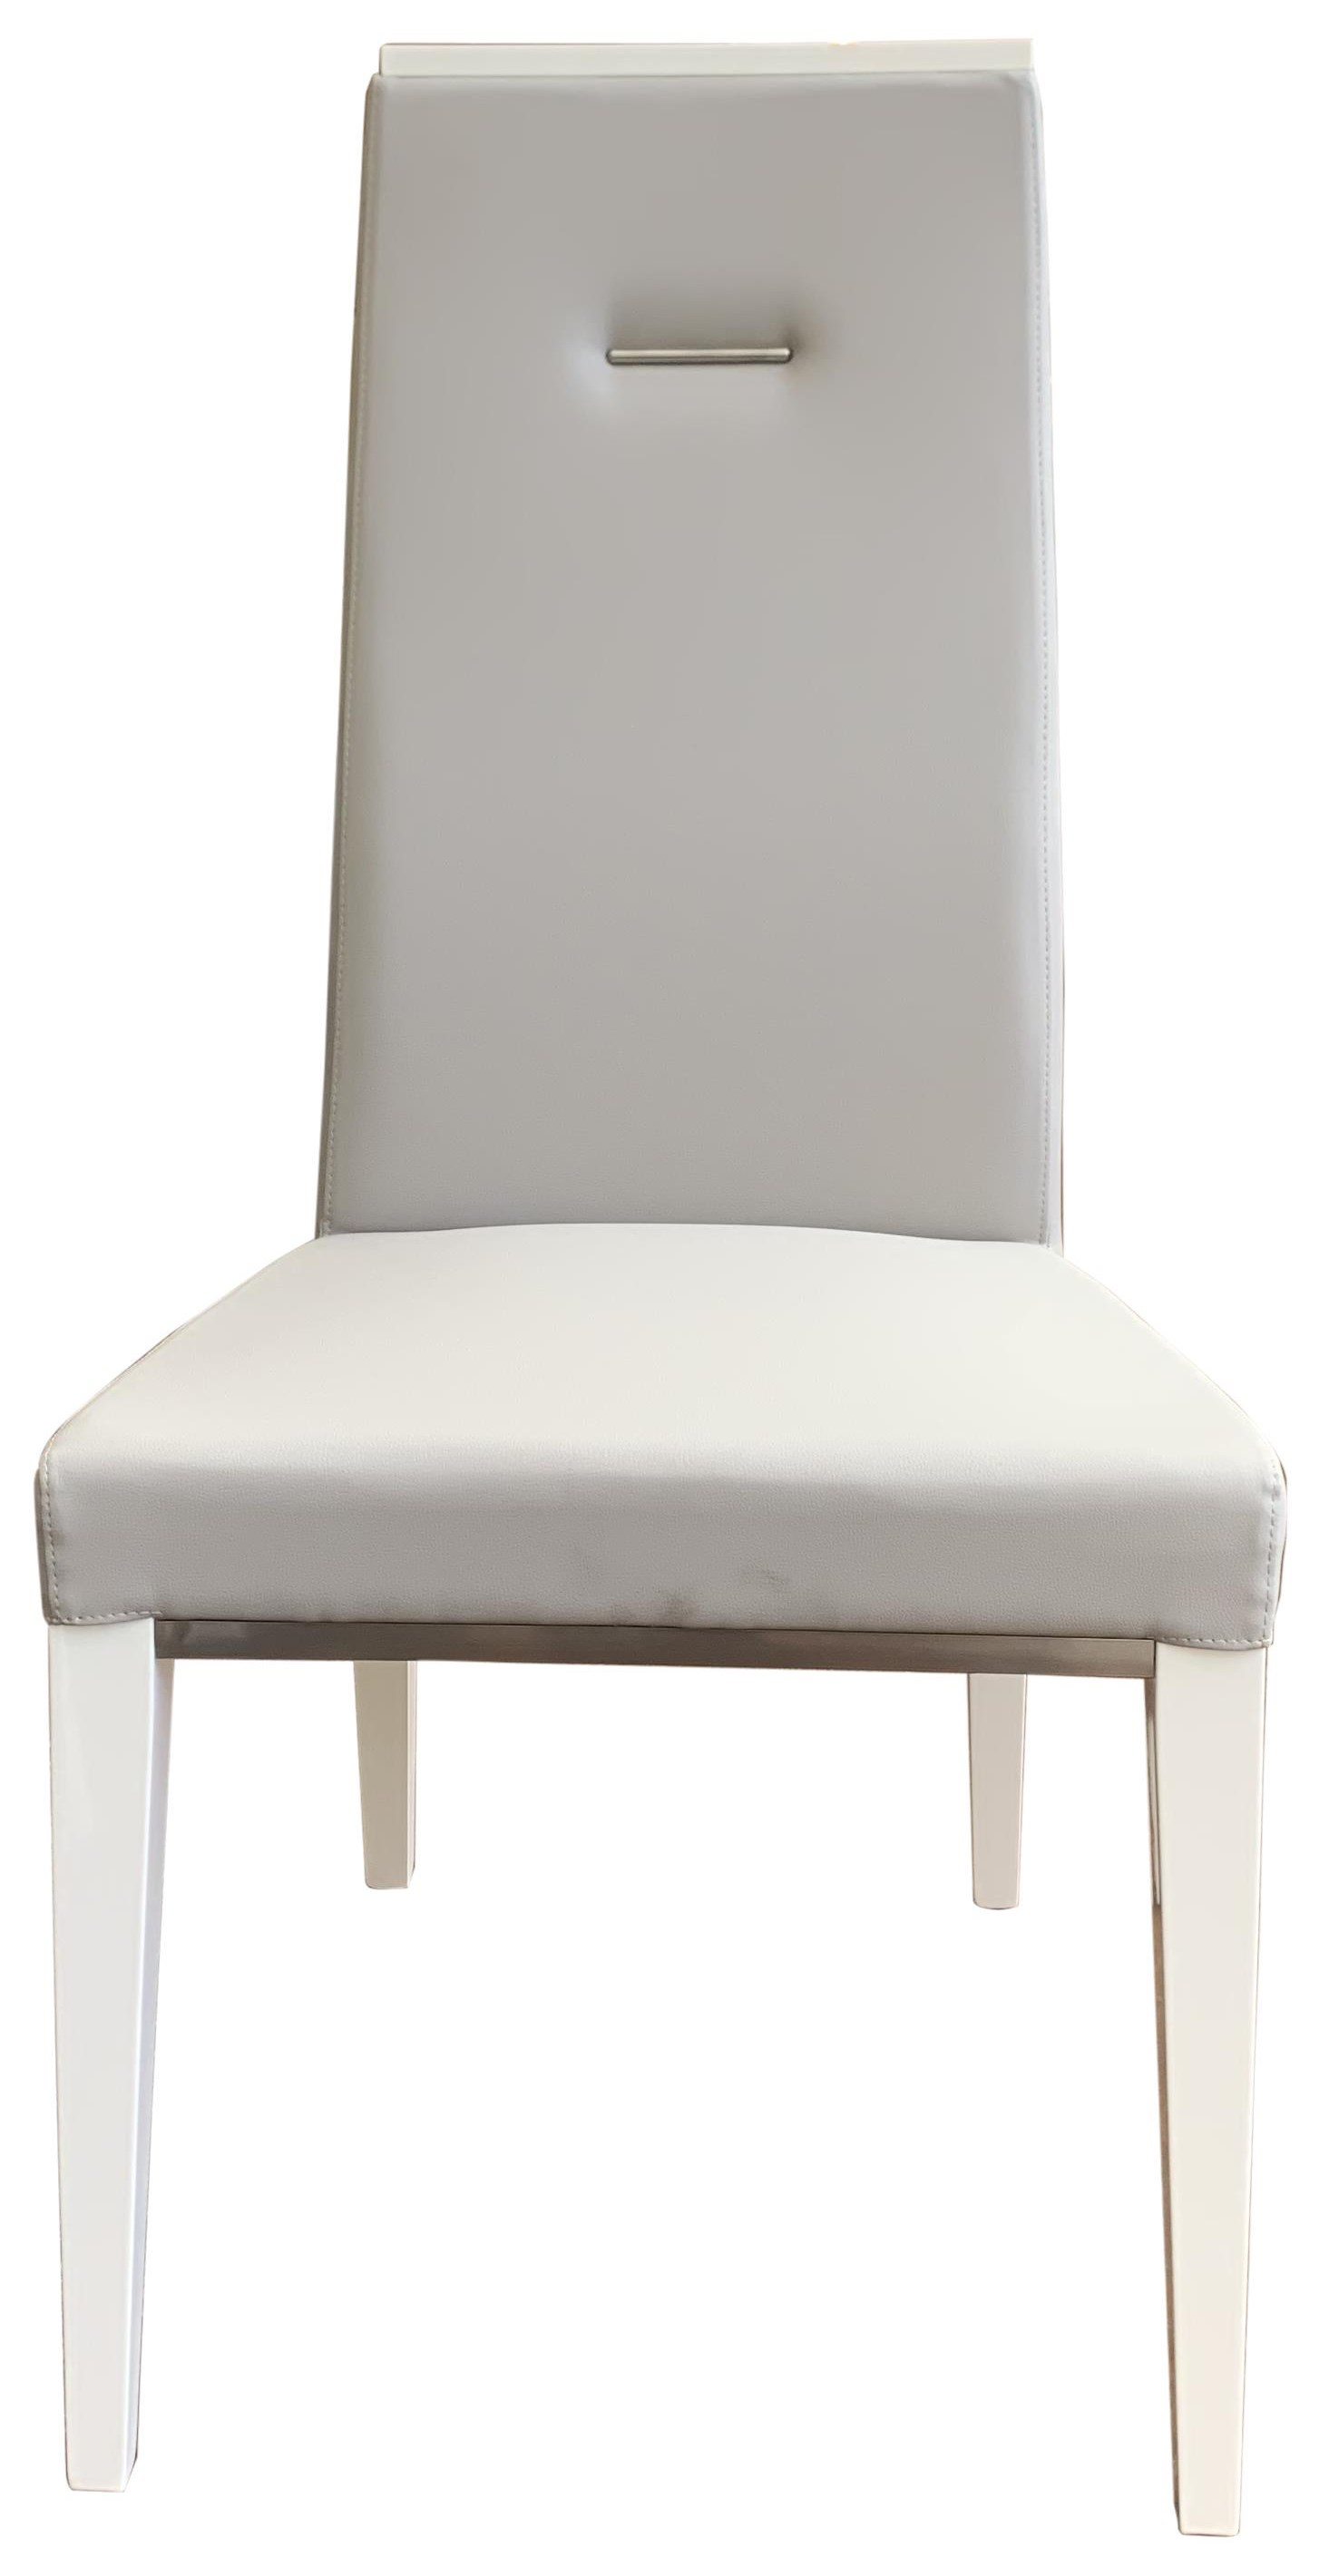 Artemide Dining Chair by Alf Italia at HomeWorld Furniture